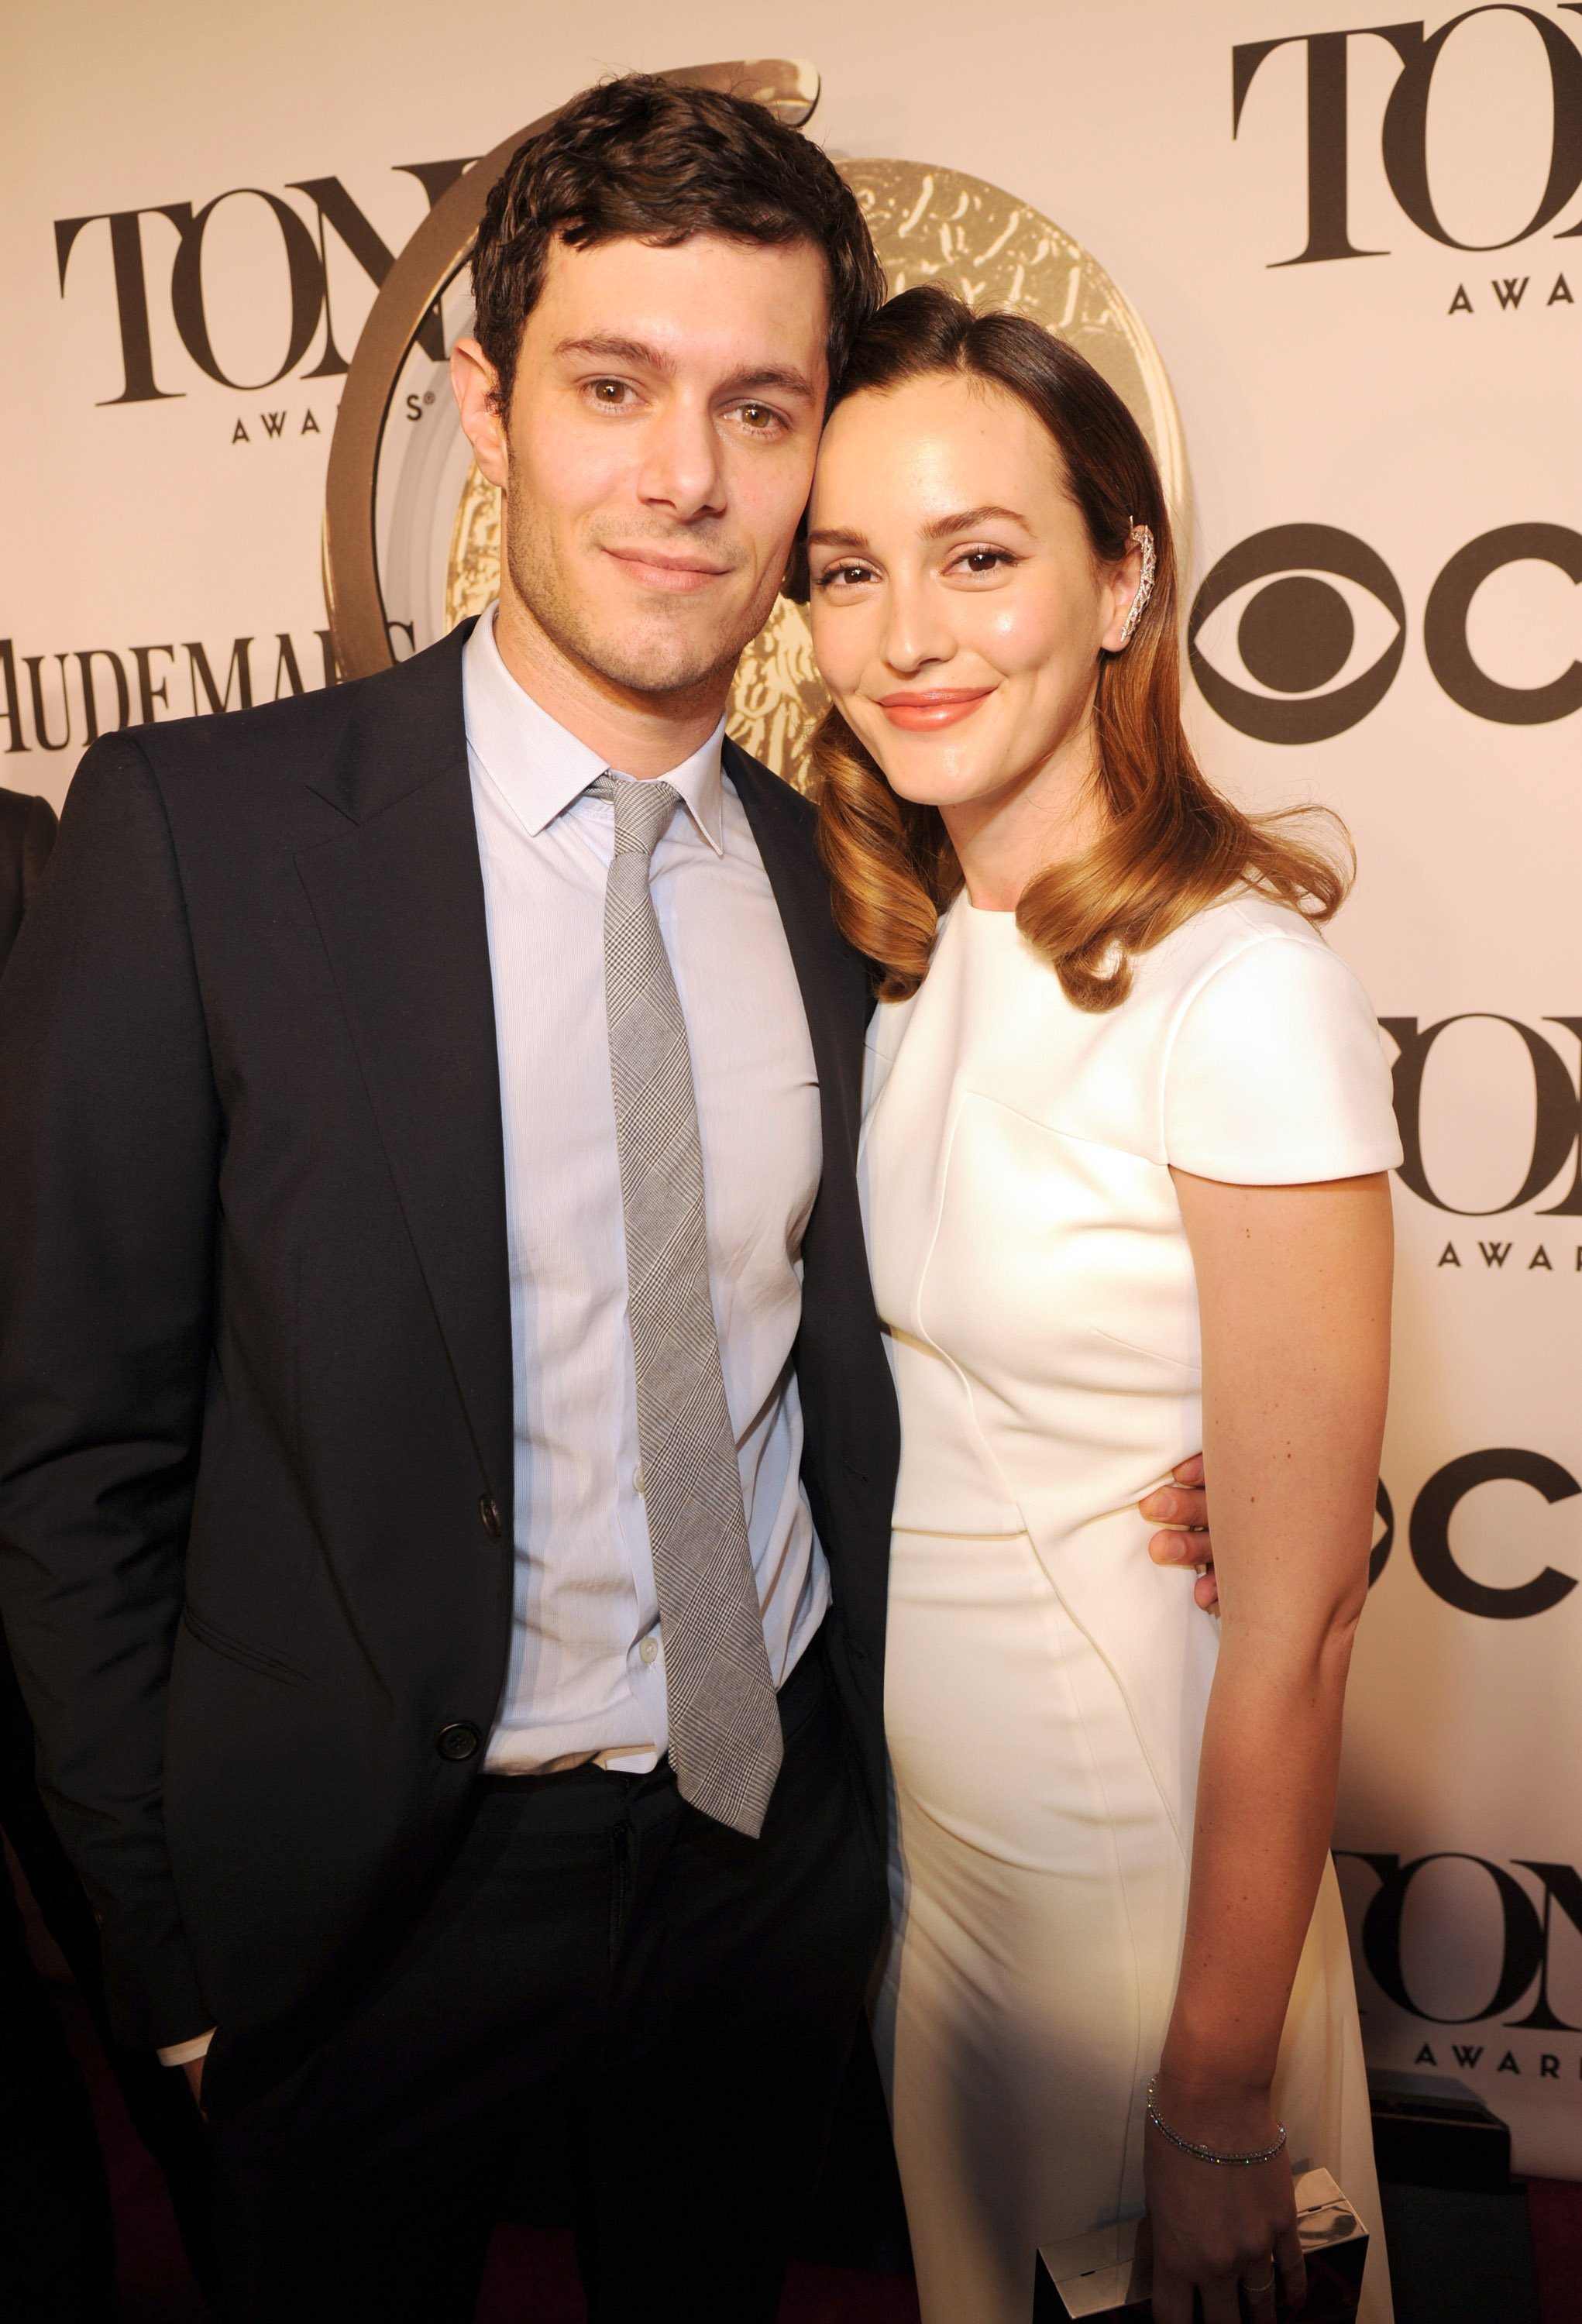 Adam Brody and Leighton Meester at the American Theatre Wing's 68th Annual Tony Awards, June 2014 | Source: Getty Images